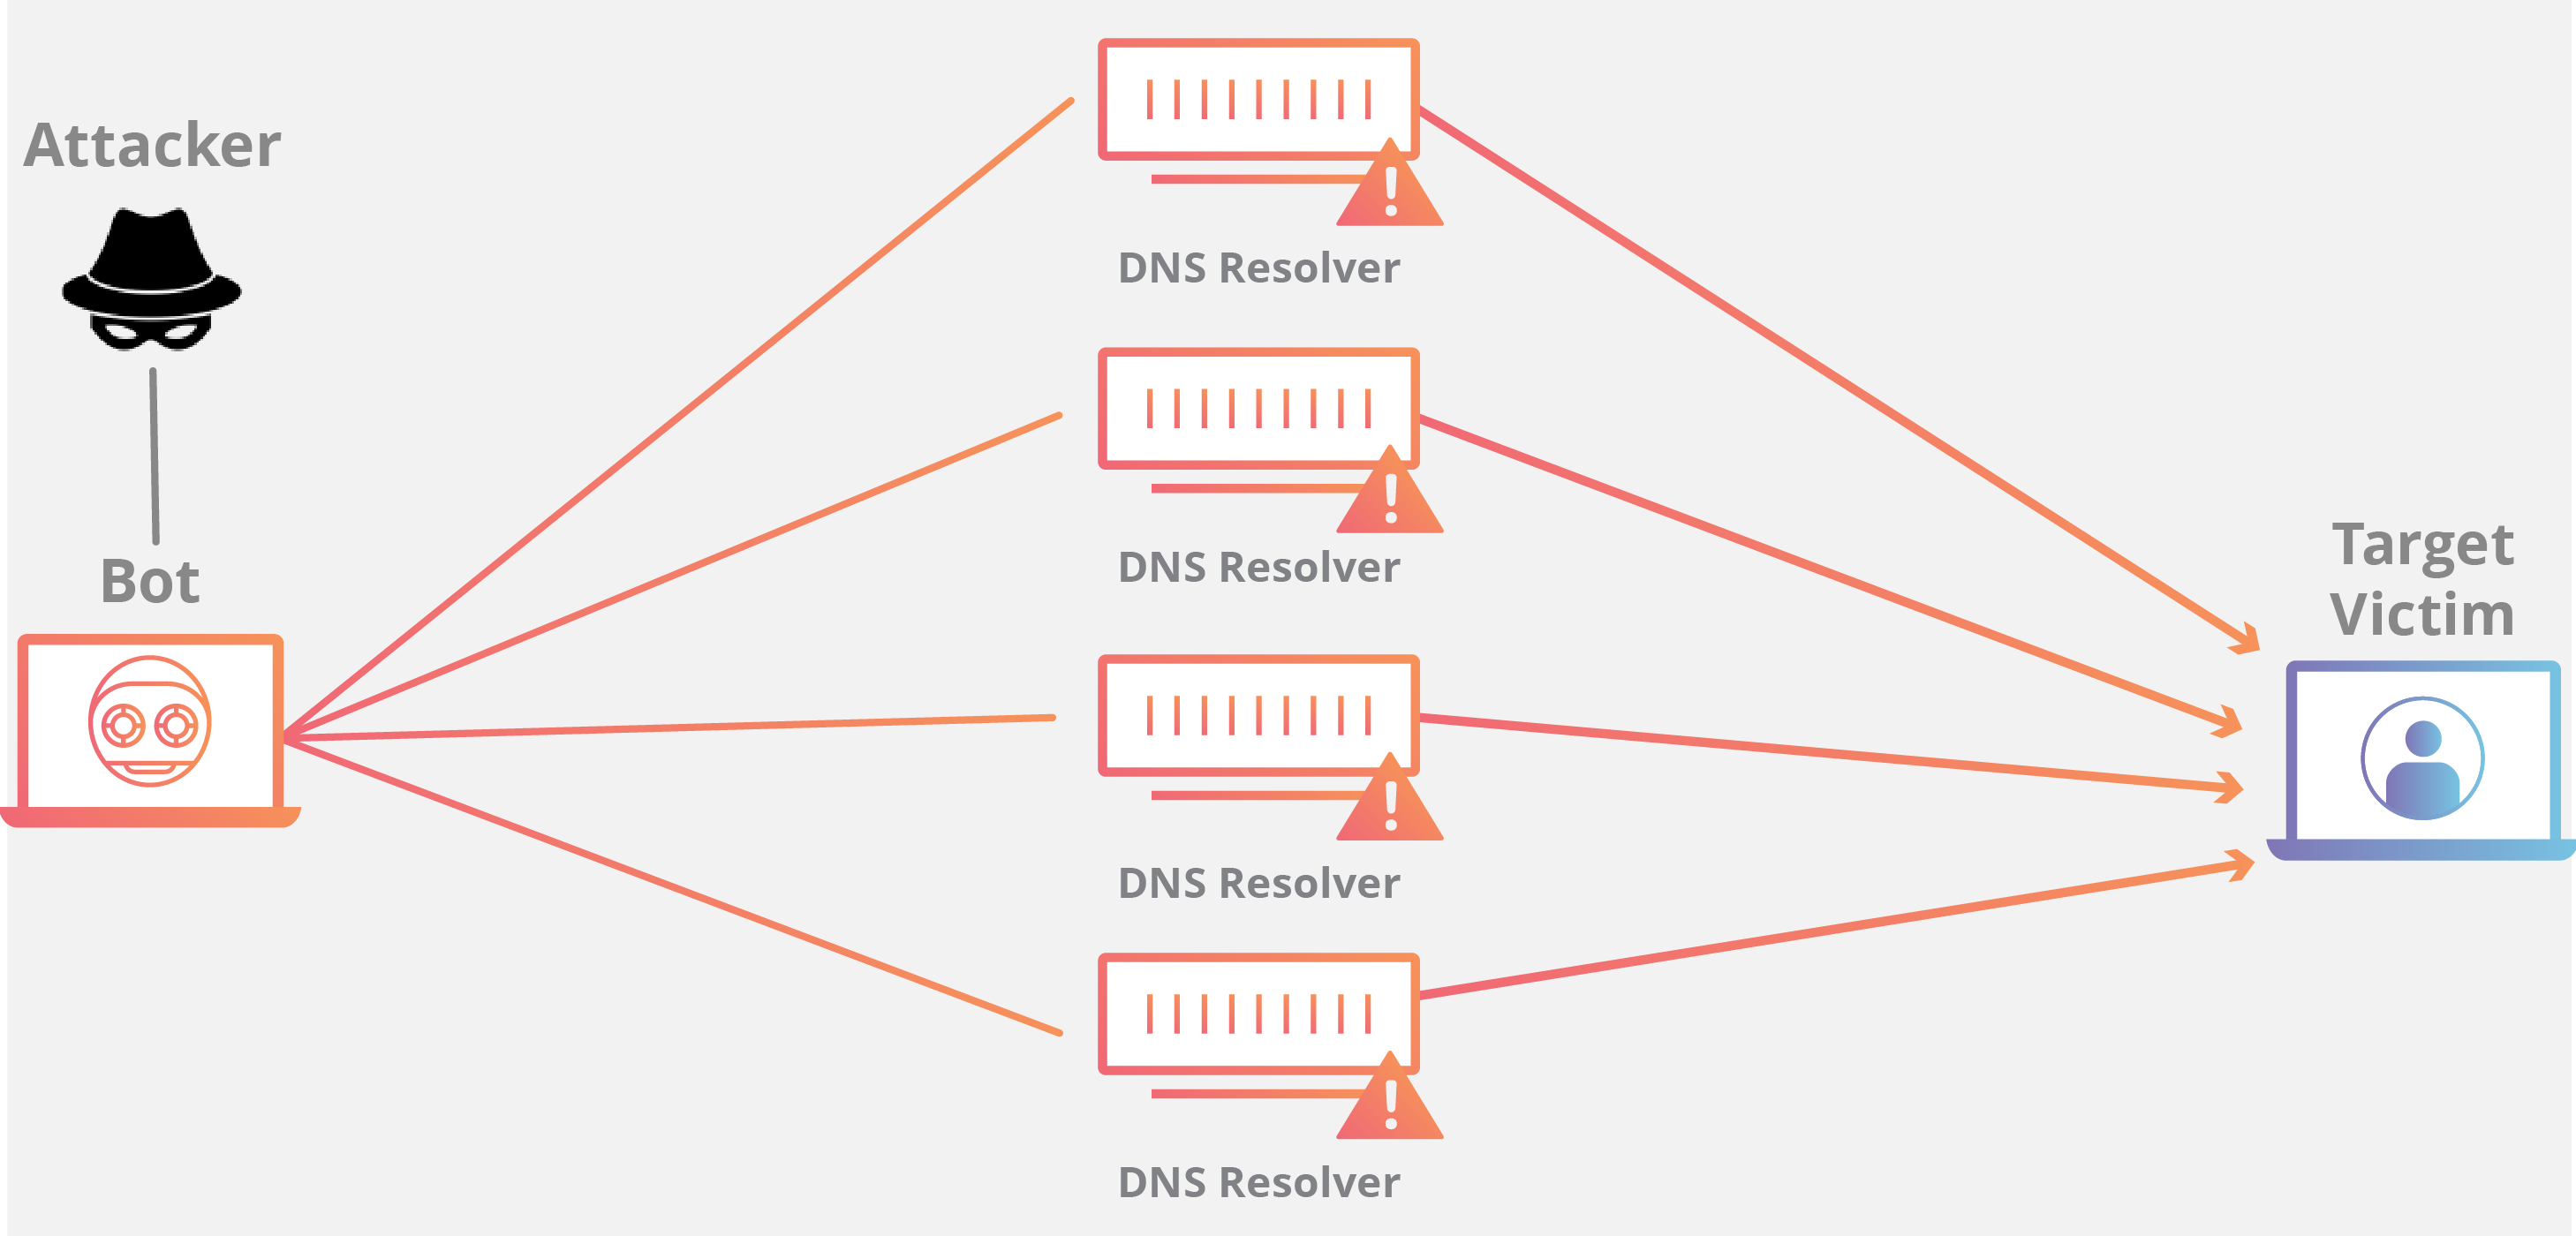 What Is a Distributed Denial-of-Service (DDoS) Attack? | Cloudflare